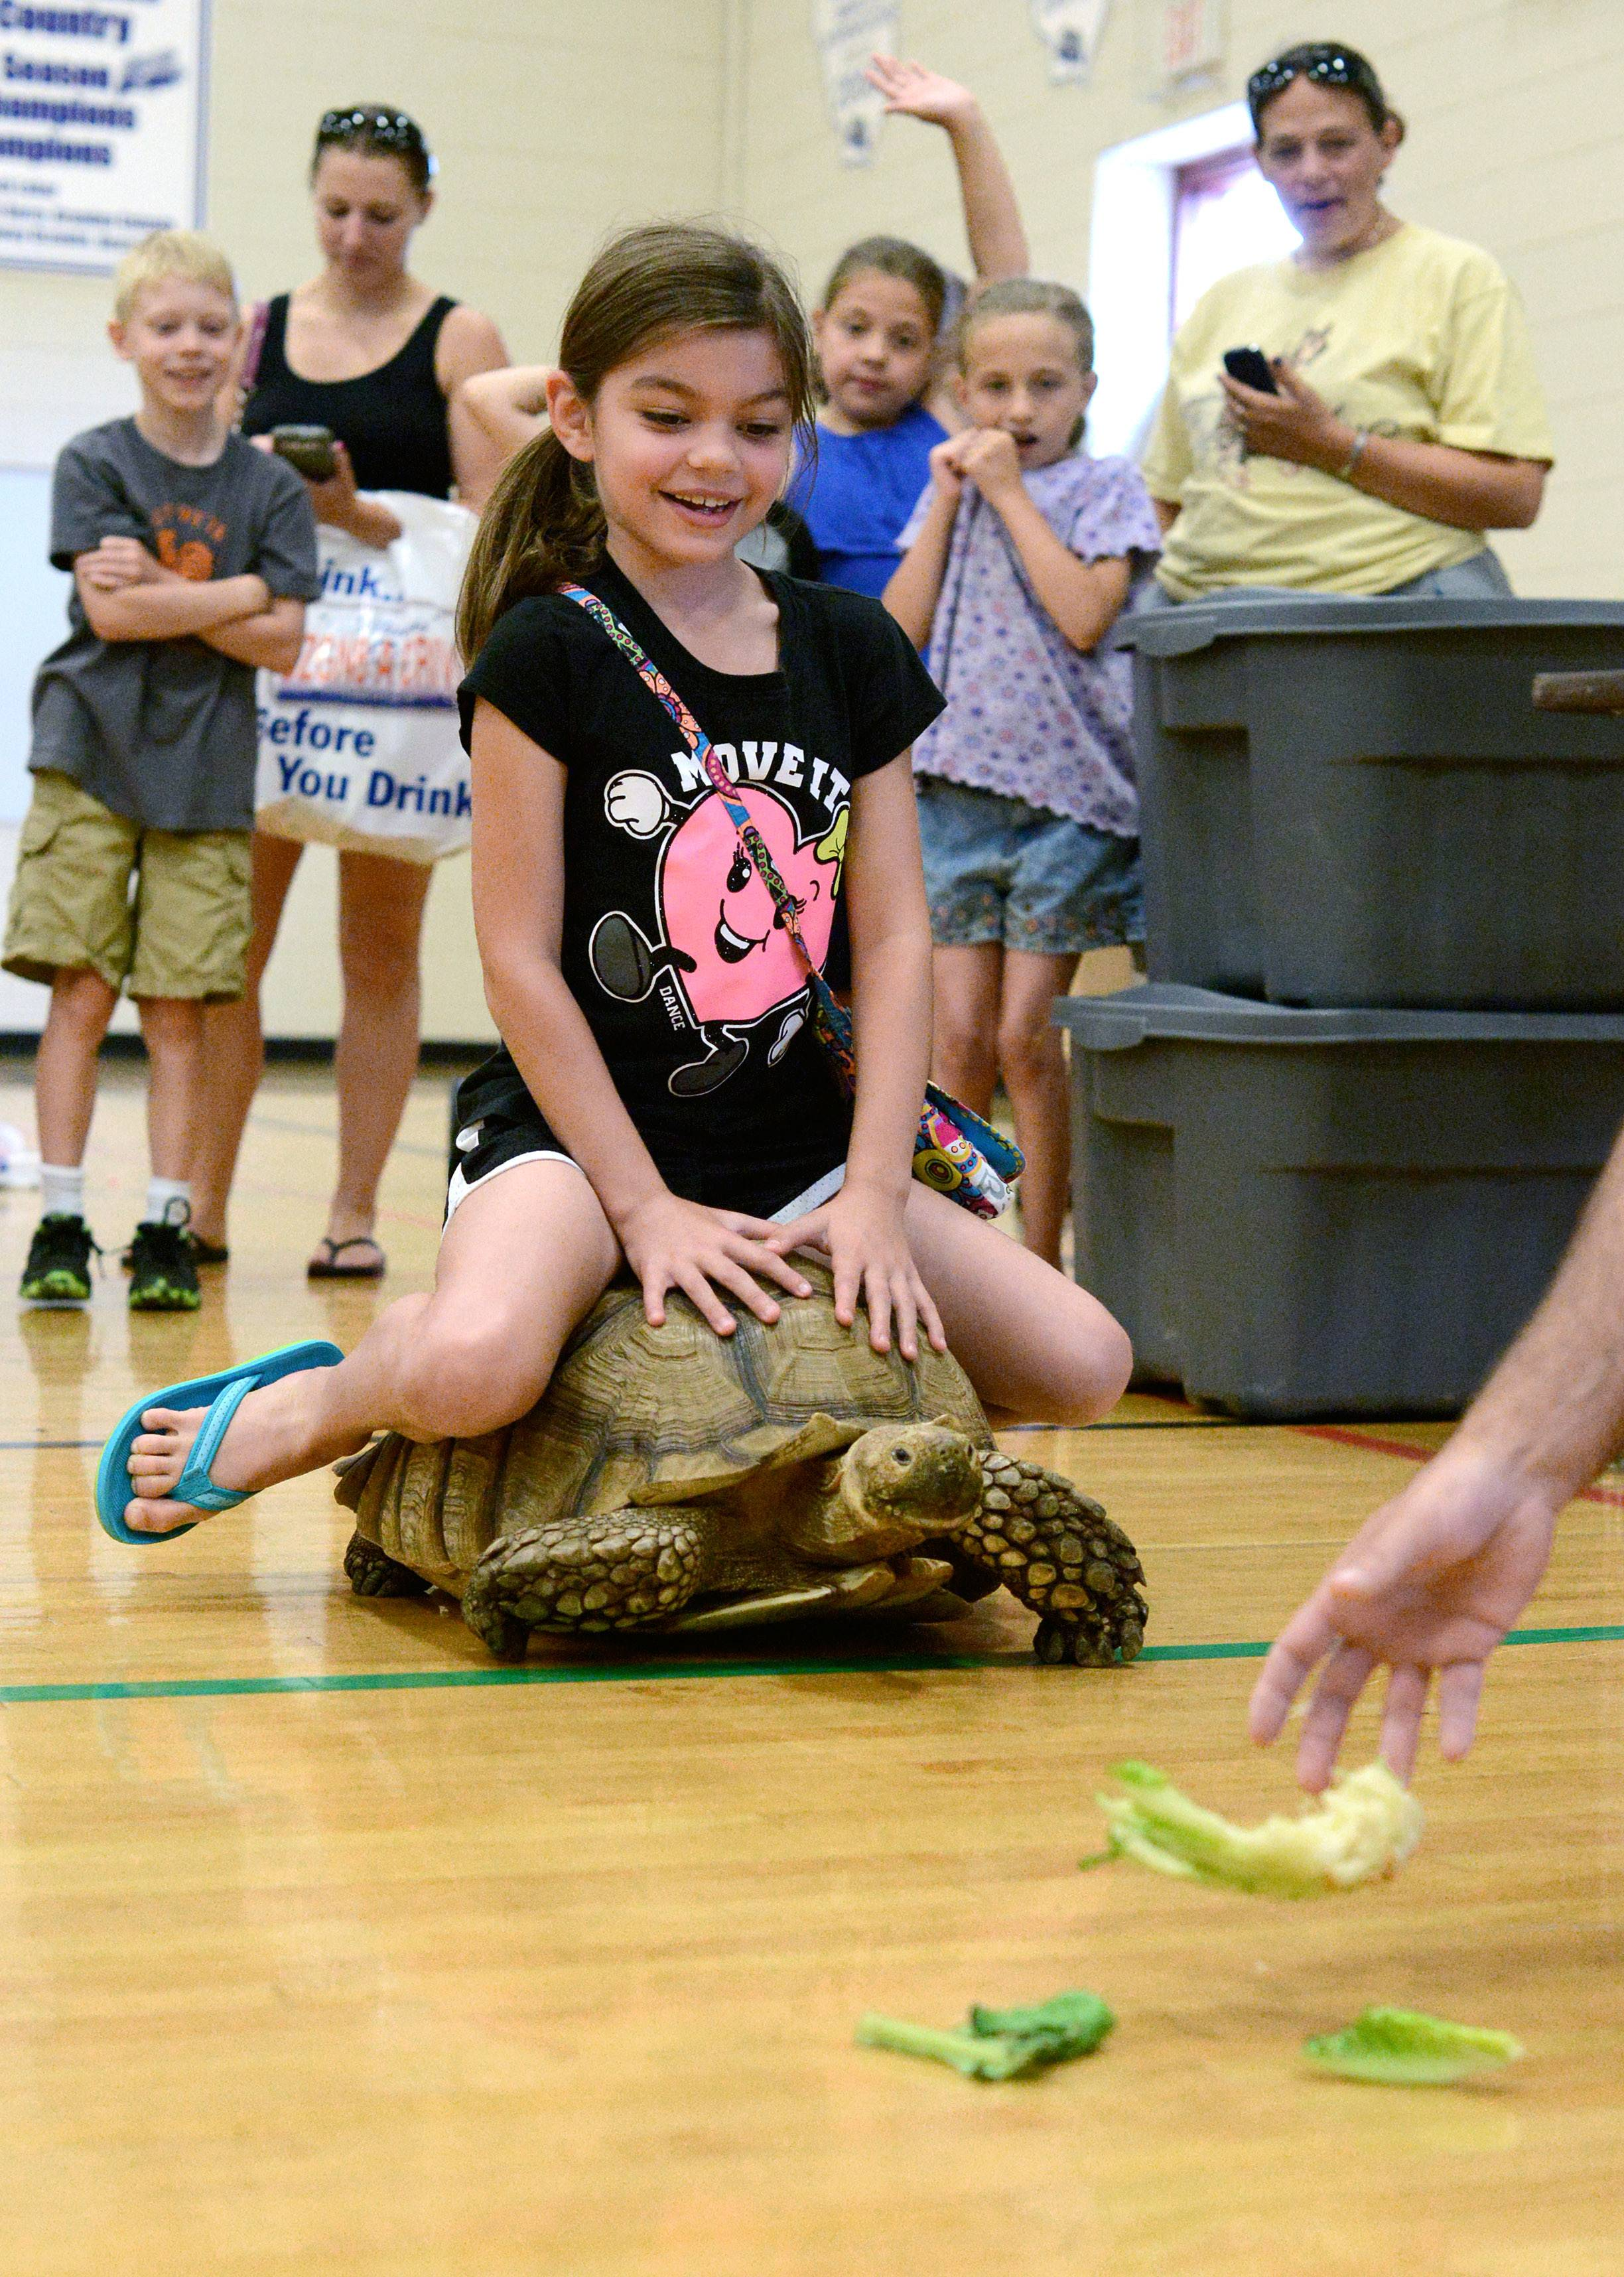 Abigail Rybicki, 7, of Algonquin takes a ride on Boulder, an African sulcata tortoise, as he makes a beeline for fresh lettuce during a reptile show at the Children's Safety Expo. Boulder is 30 years old.